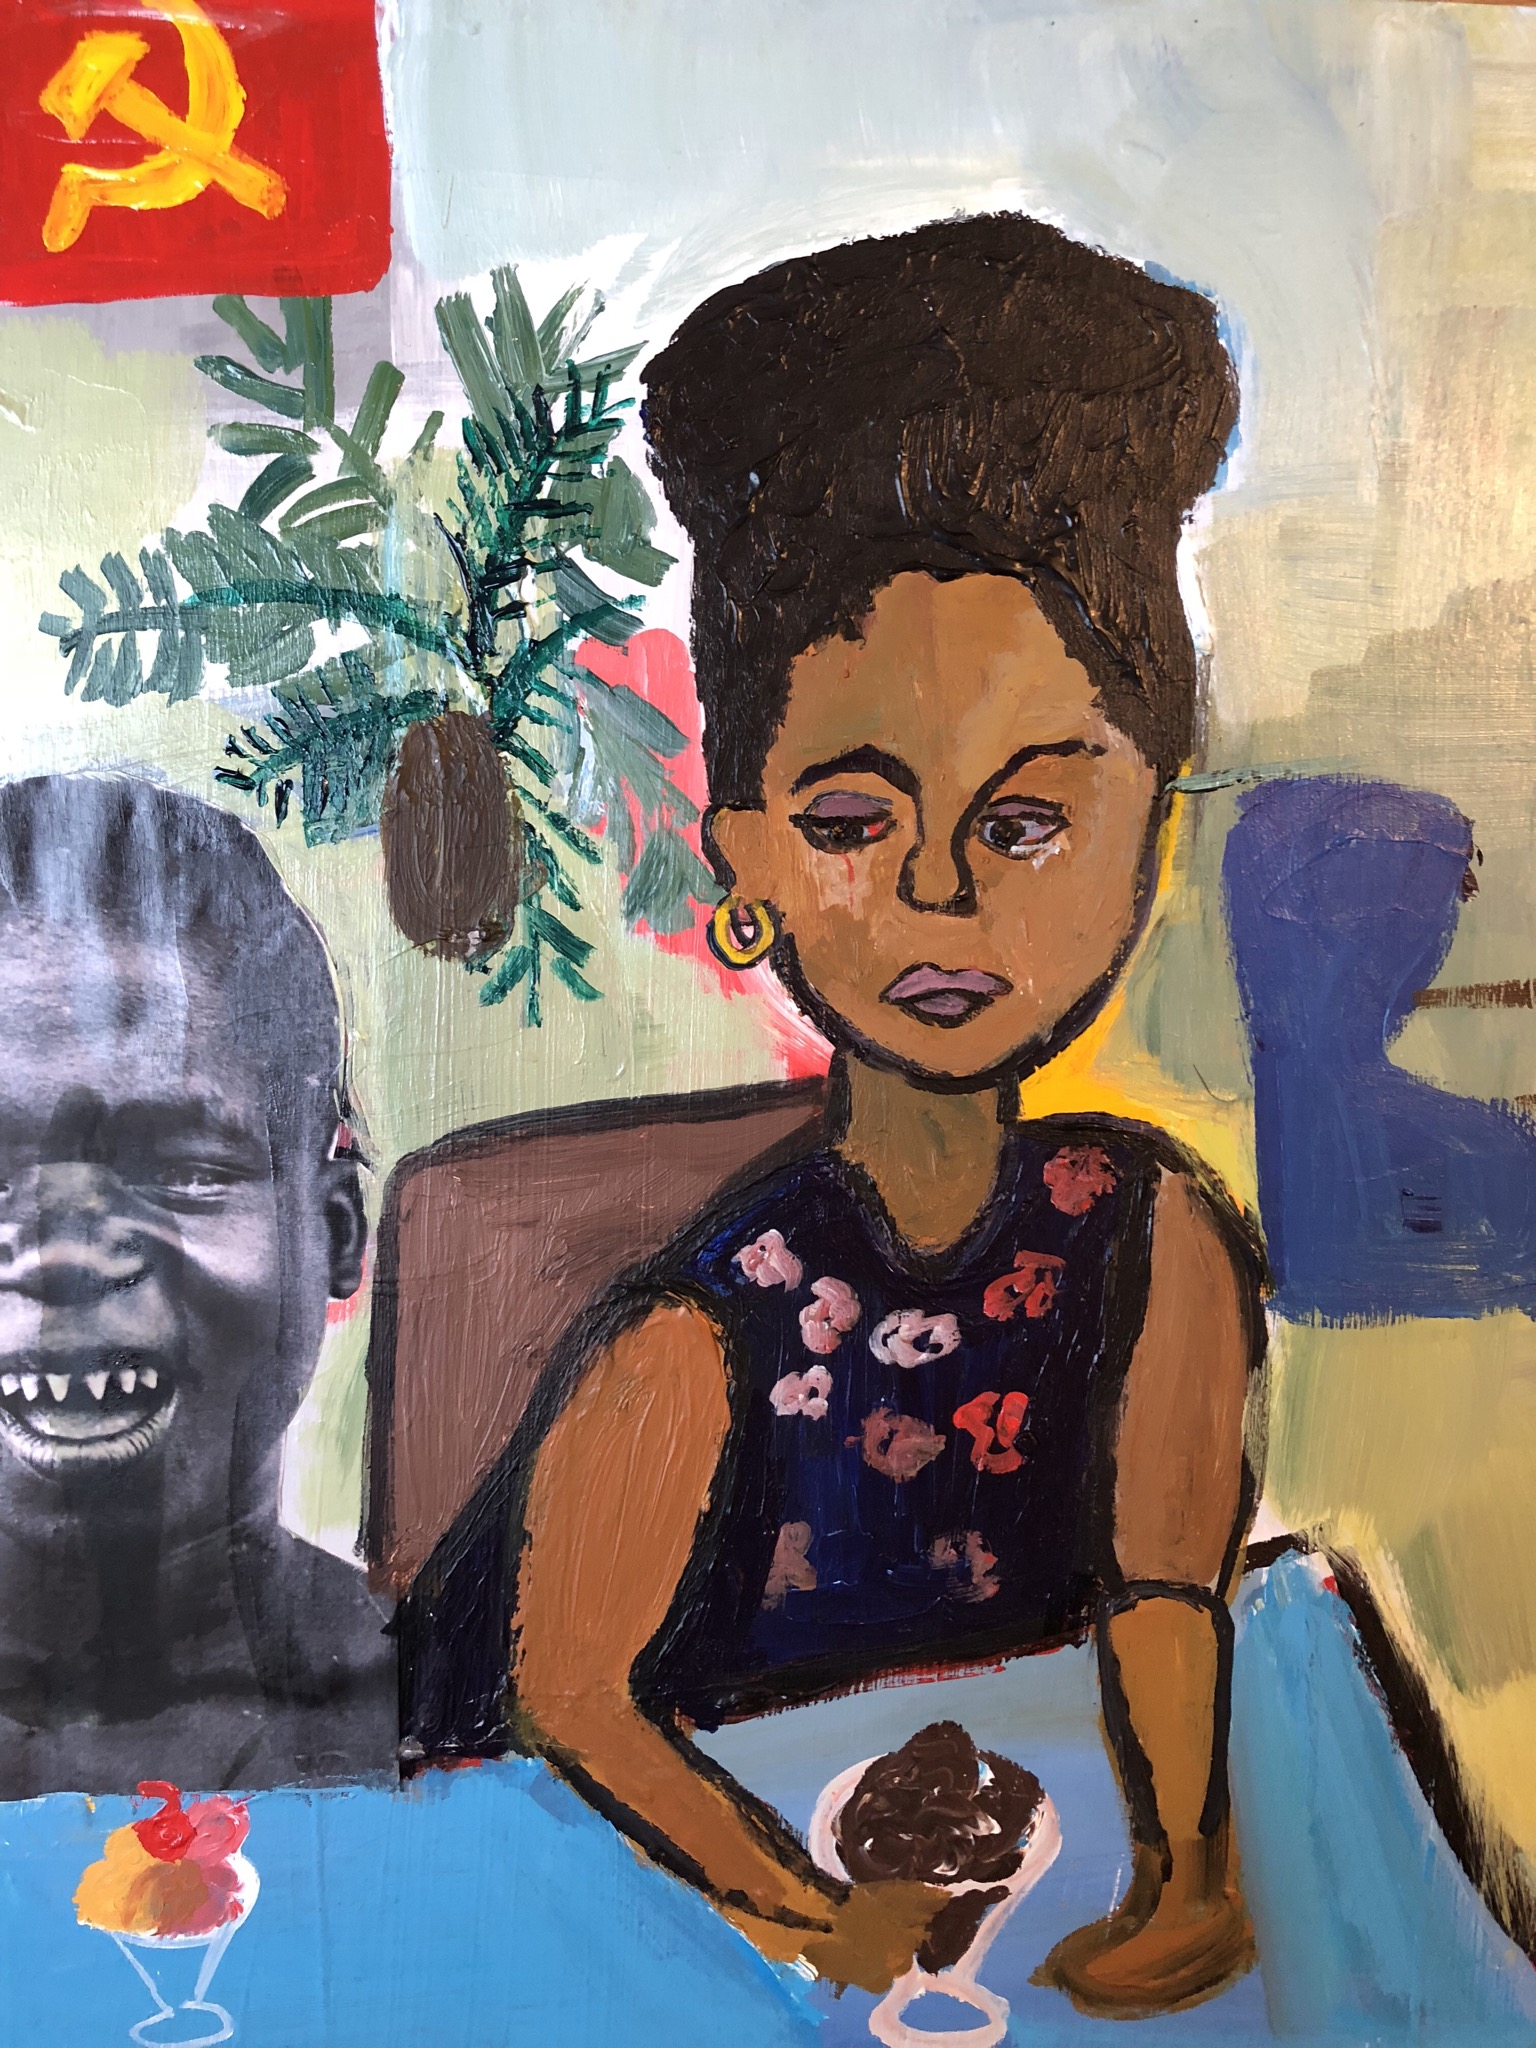 Cassi Namoda  -  Ice cream in Mozambique , 2018 Acrylic and collage on panel  14h x 11w in